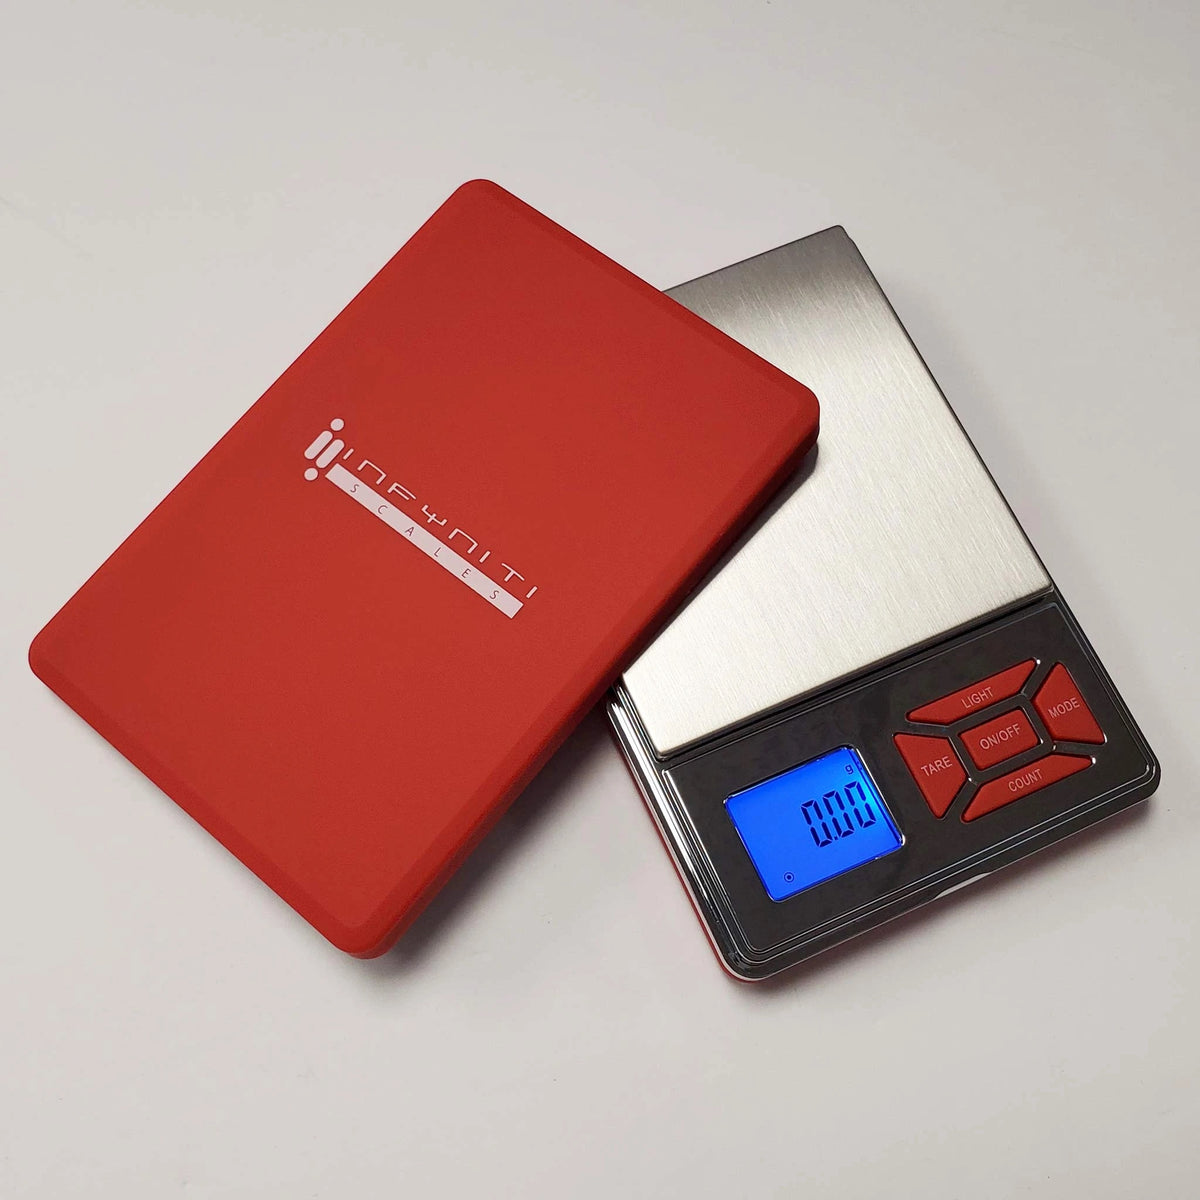 Infyniti Scales - Executive Digital - 50g x 0.01g (Red)